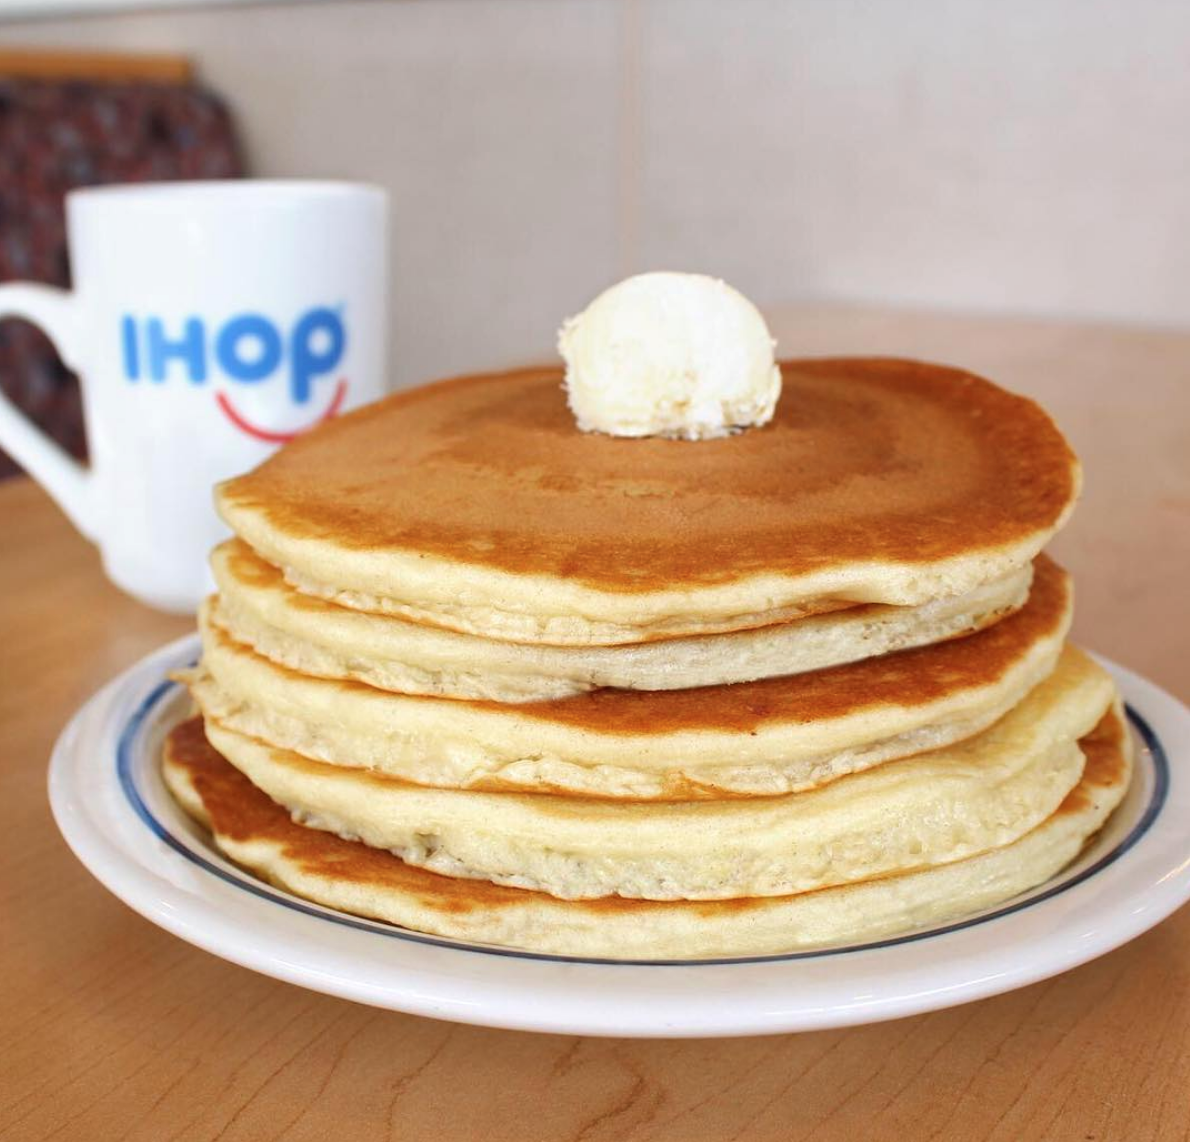 IHOP pancakes are superior.